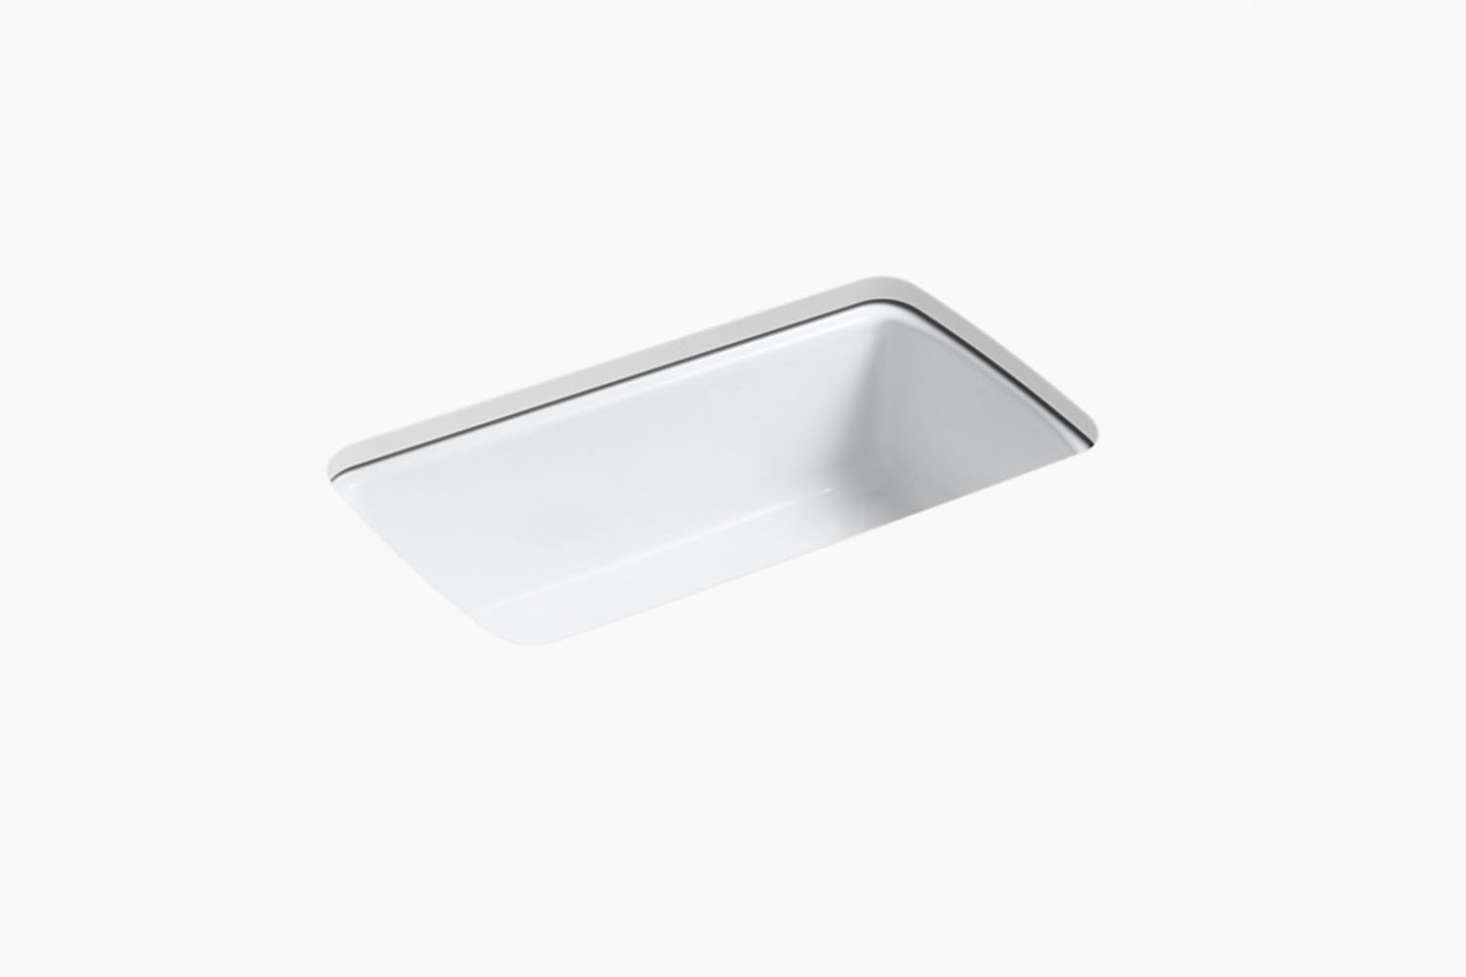 The Kohler Cape Dory Under-Mount Single-Bowl Kitchen Sink is similar to the large white kitchen sink seen here; $859 at Kohler.